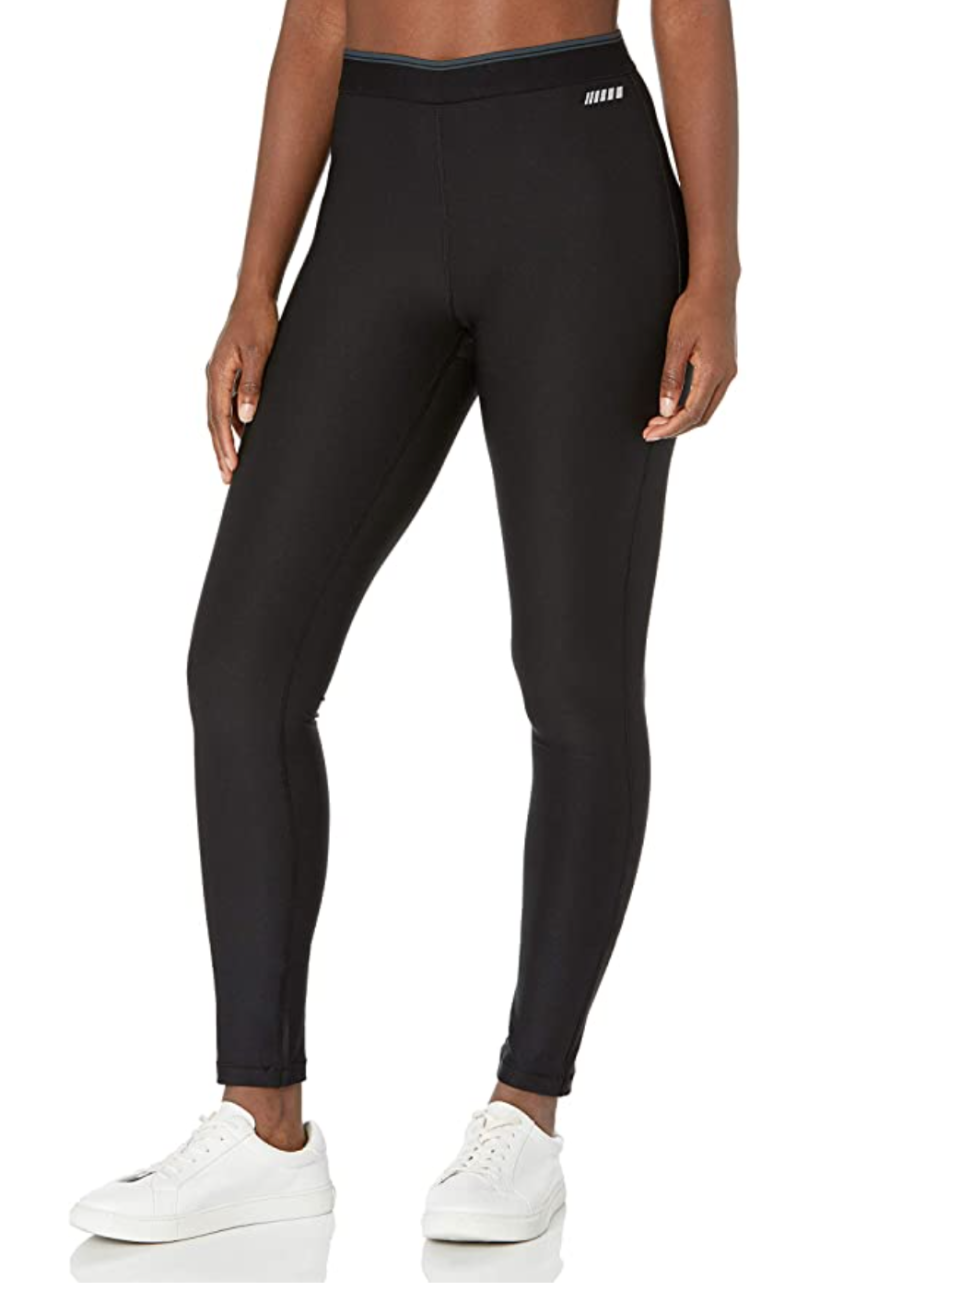 Amazon Essentials Elastic Waist Performance Legging in Black (Photo via Amazon)